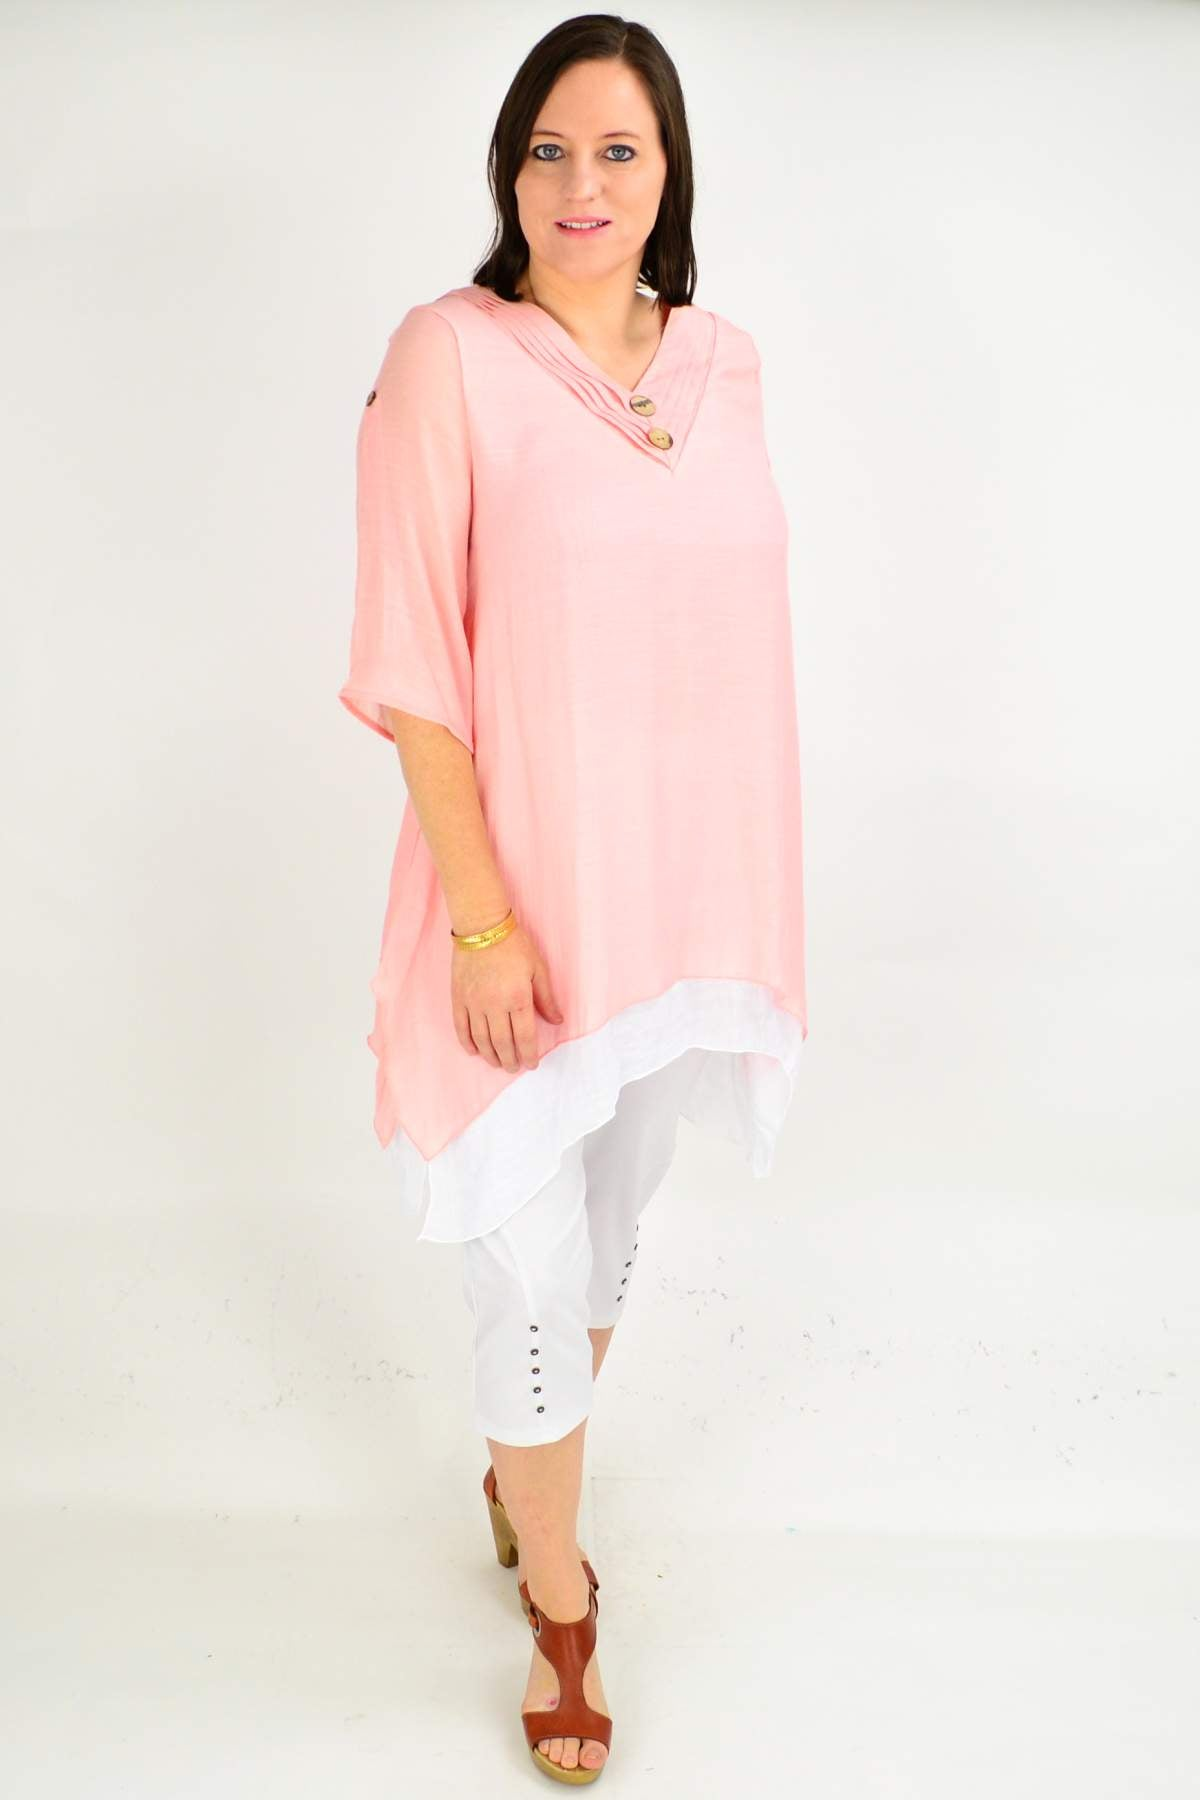 model wearing tunic dress top in pink